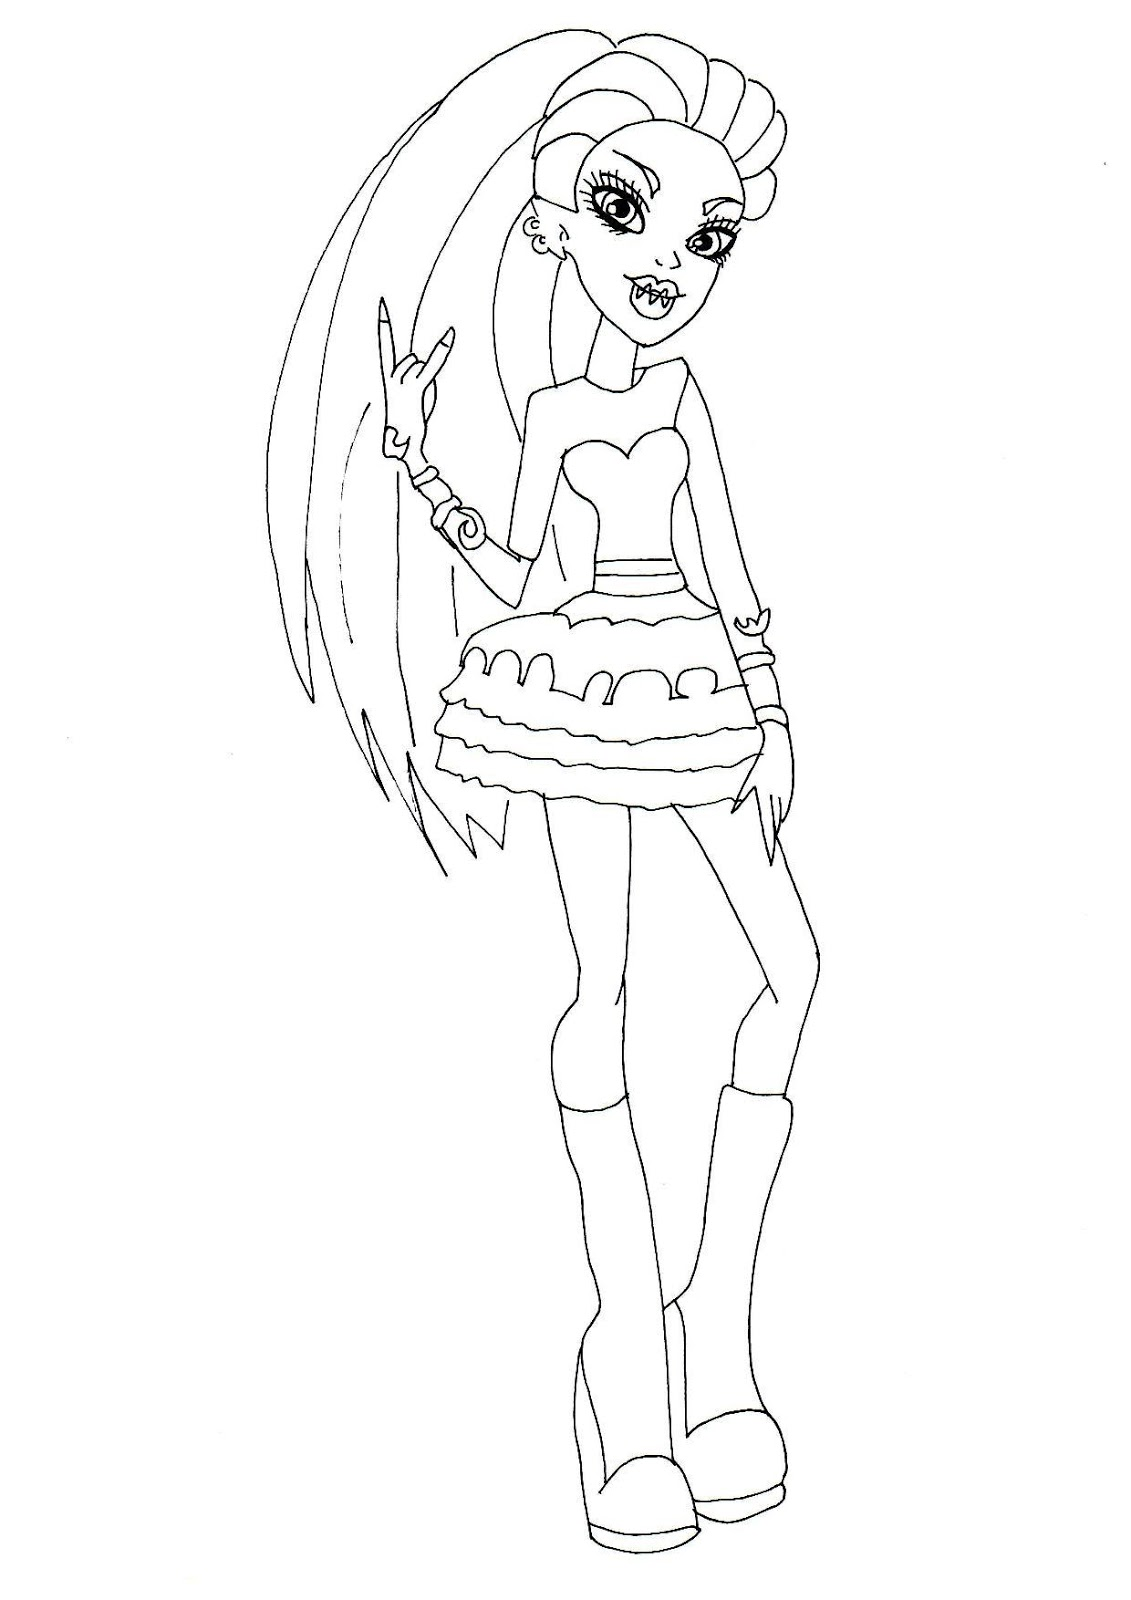 Free Printable Monster High Coloring Pages Venus High Coloring Pages To Print Out